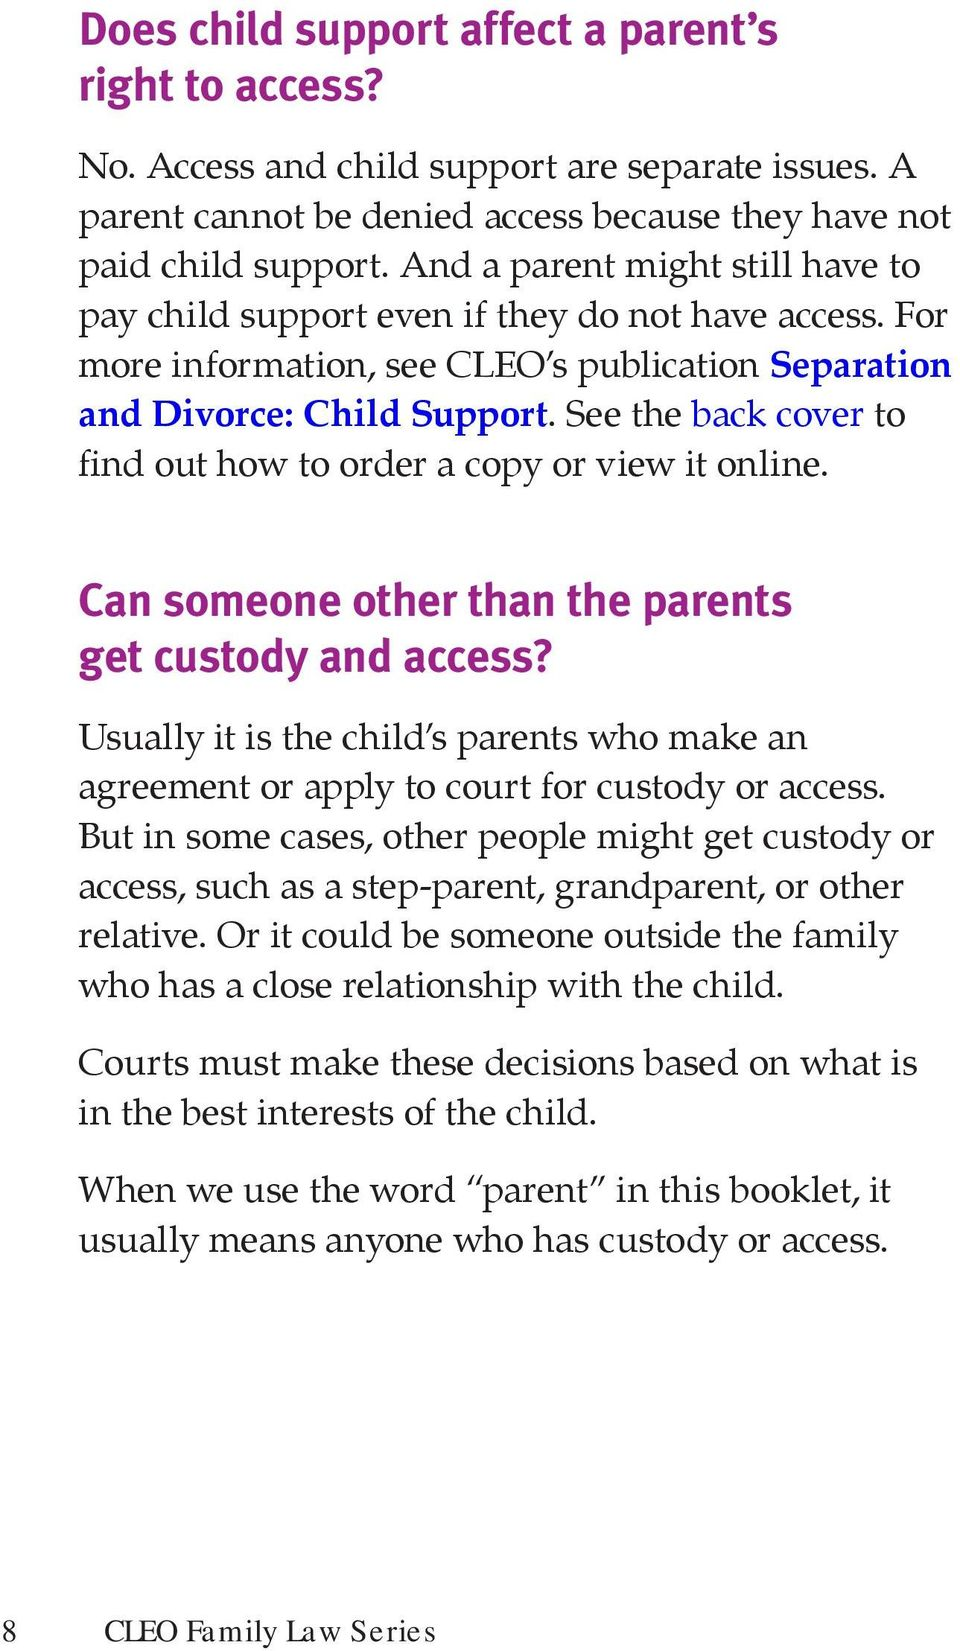 See the back cover to find out how to order a copy or view it online. Can someone other than the parents get custody and access?